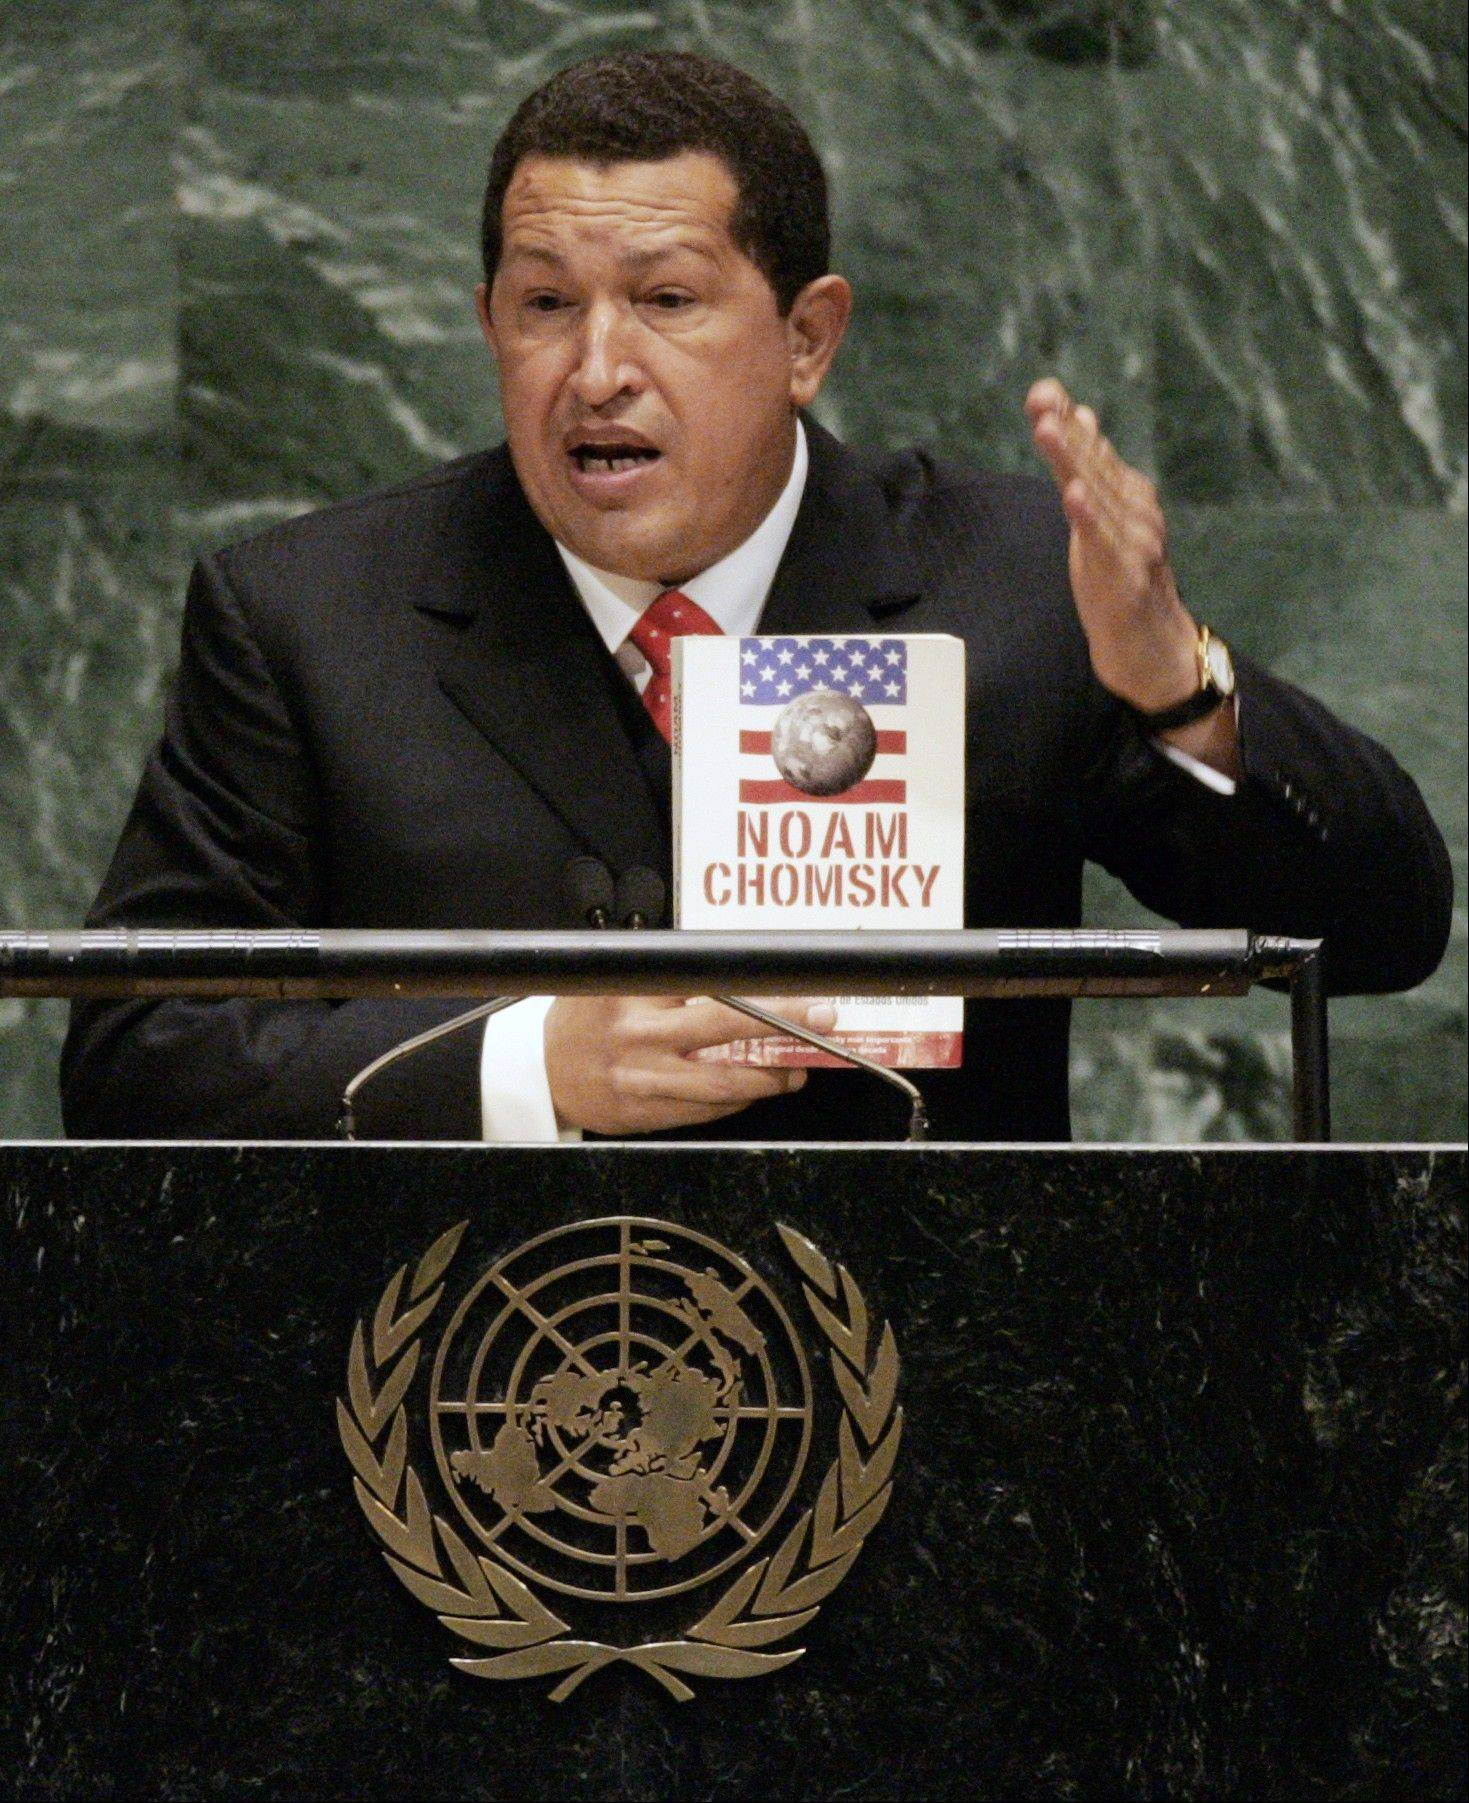 In this 2006 file photo, Venezuelan President Hugo Chavez holds a Spanish-language version of �Hegemony or Survival: America�s Quest for Global Dominance� by Noam Chomsky while addressing the 61st session of the United Nations General Assembly at U.N. headquarters. During his address, Chavez, who often tried to cast himself as a champion of the American poor, called President George W. Bush �the devil.�